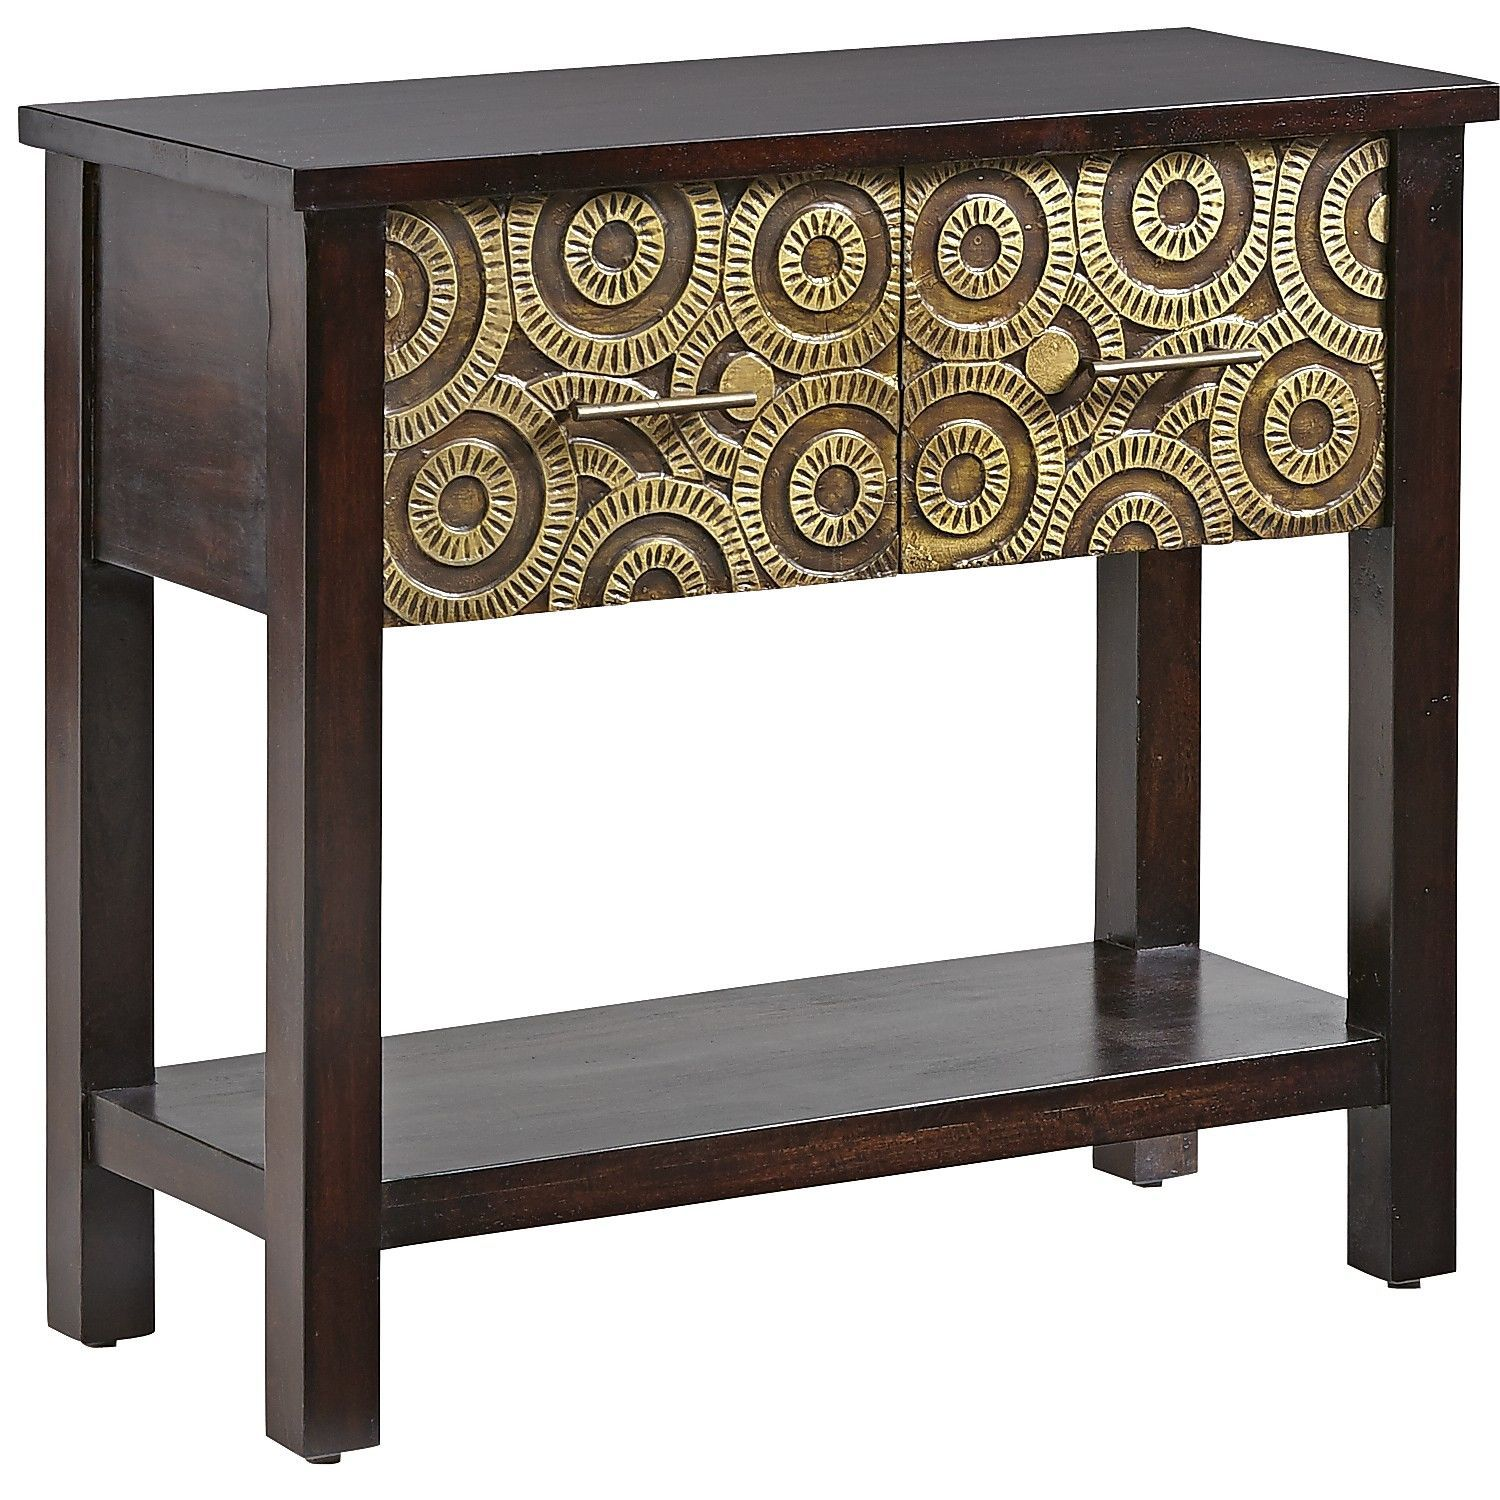 Pier 1 Imports (With Images